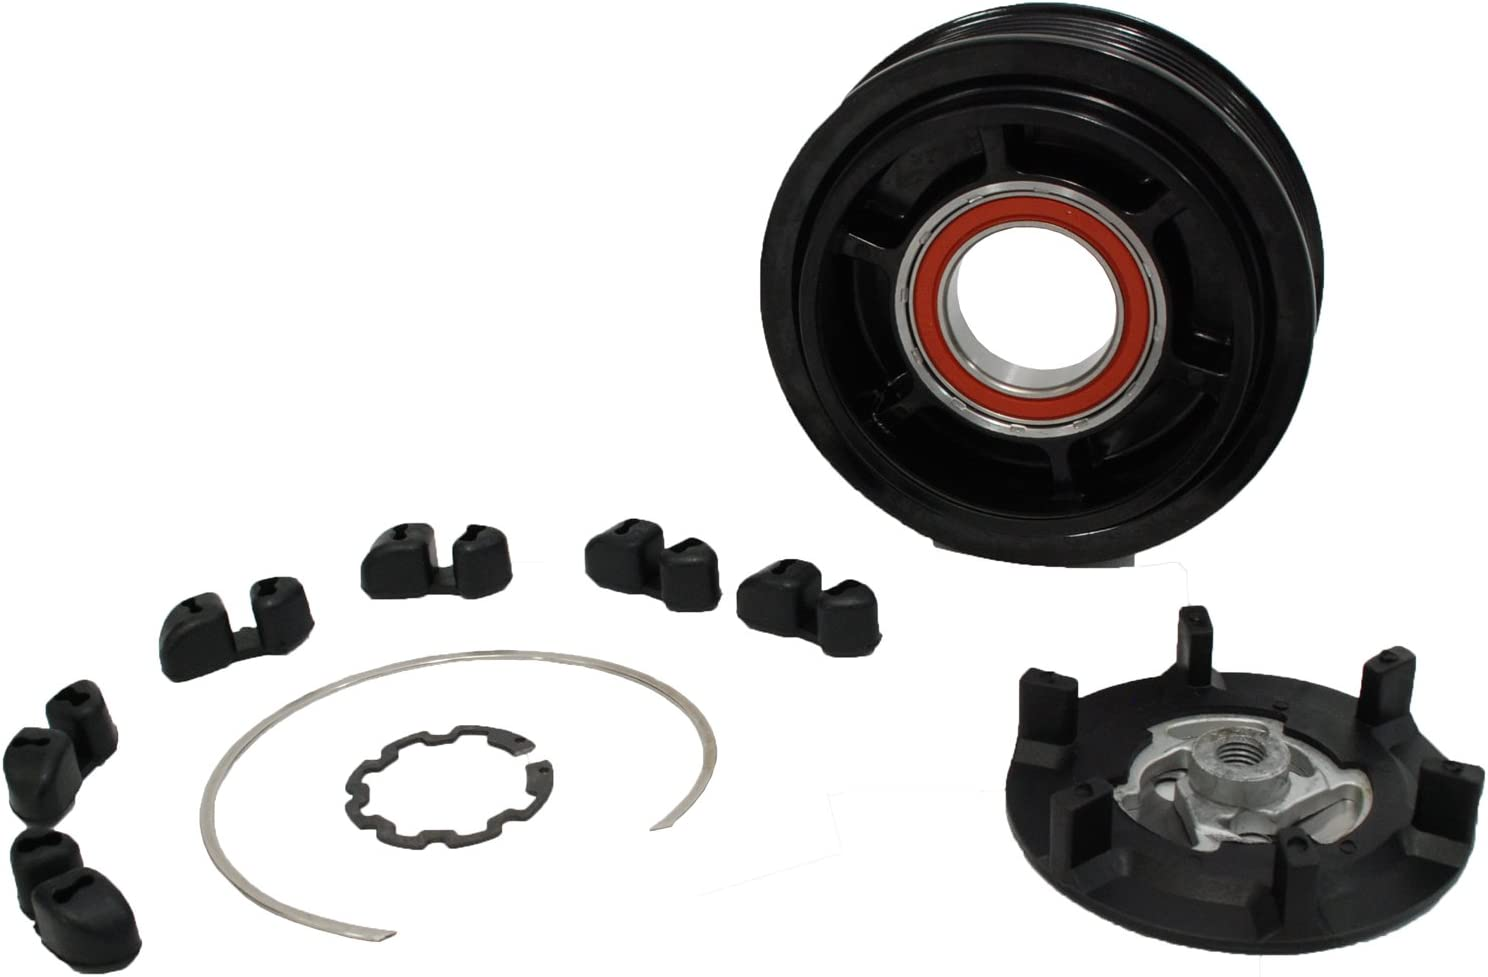 NEW A//C Compressor Clutch kit for Mercedes Models 7SEU17C with 6 GROOVE PULLEY